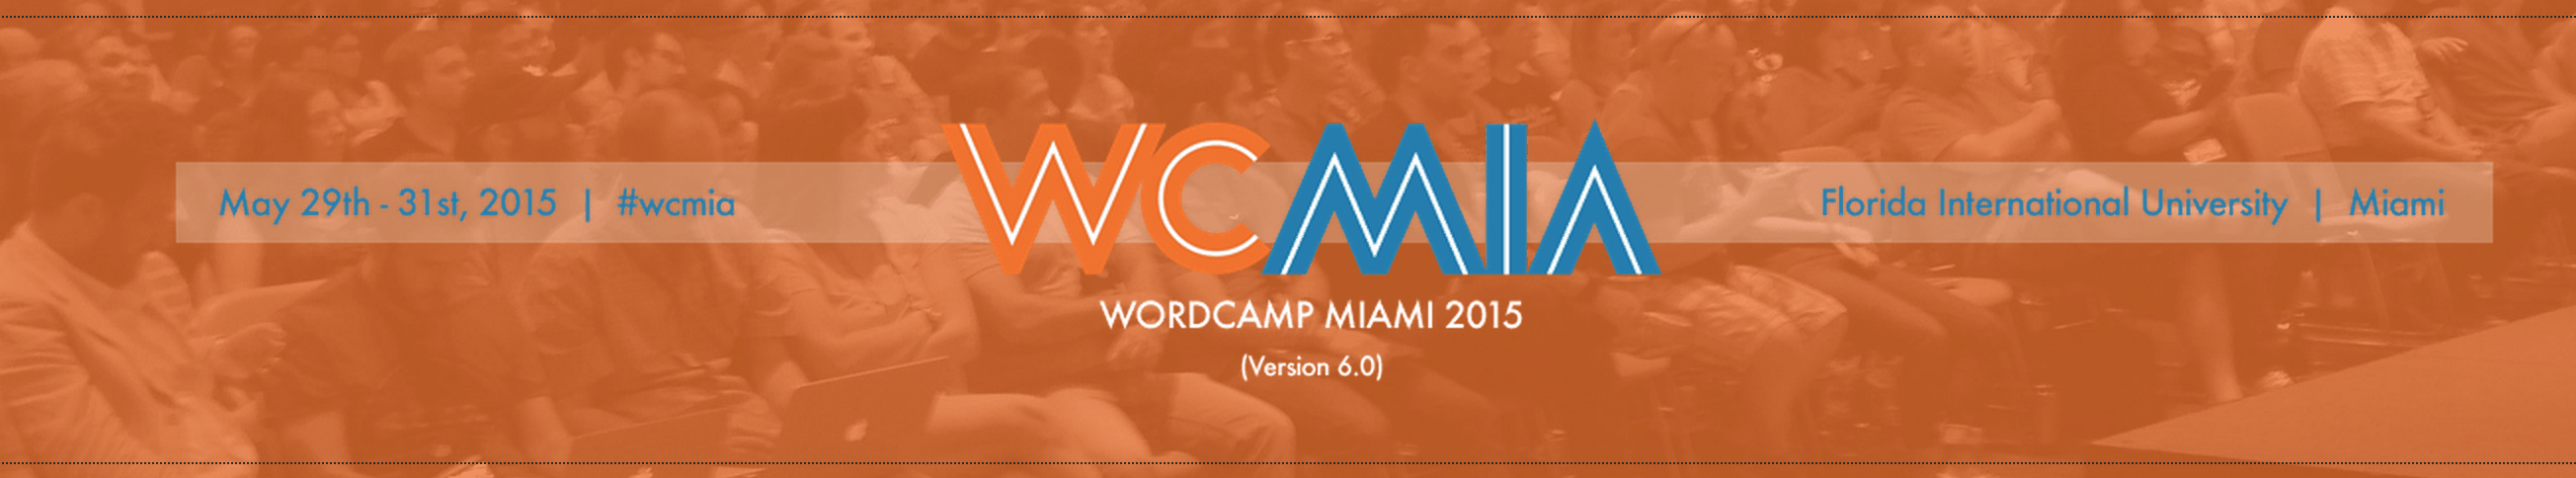 Our Experience at Word Camp Miami 2015